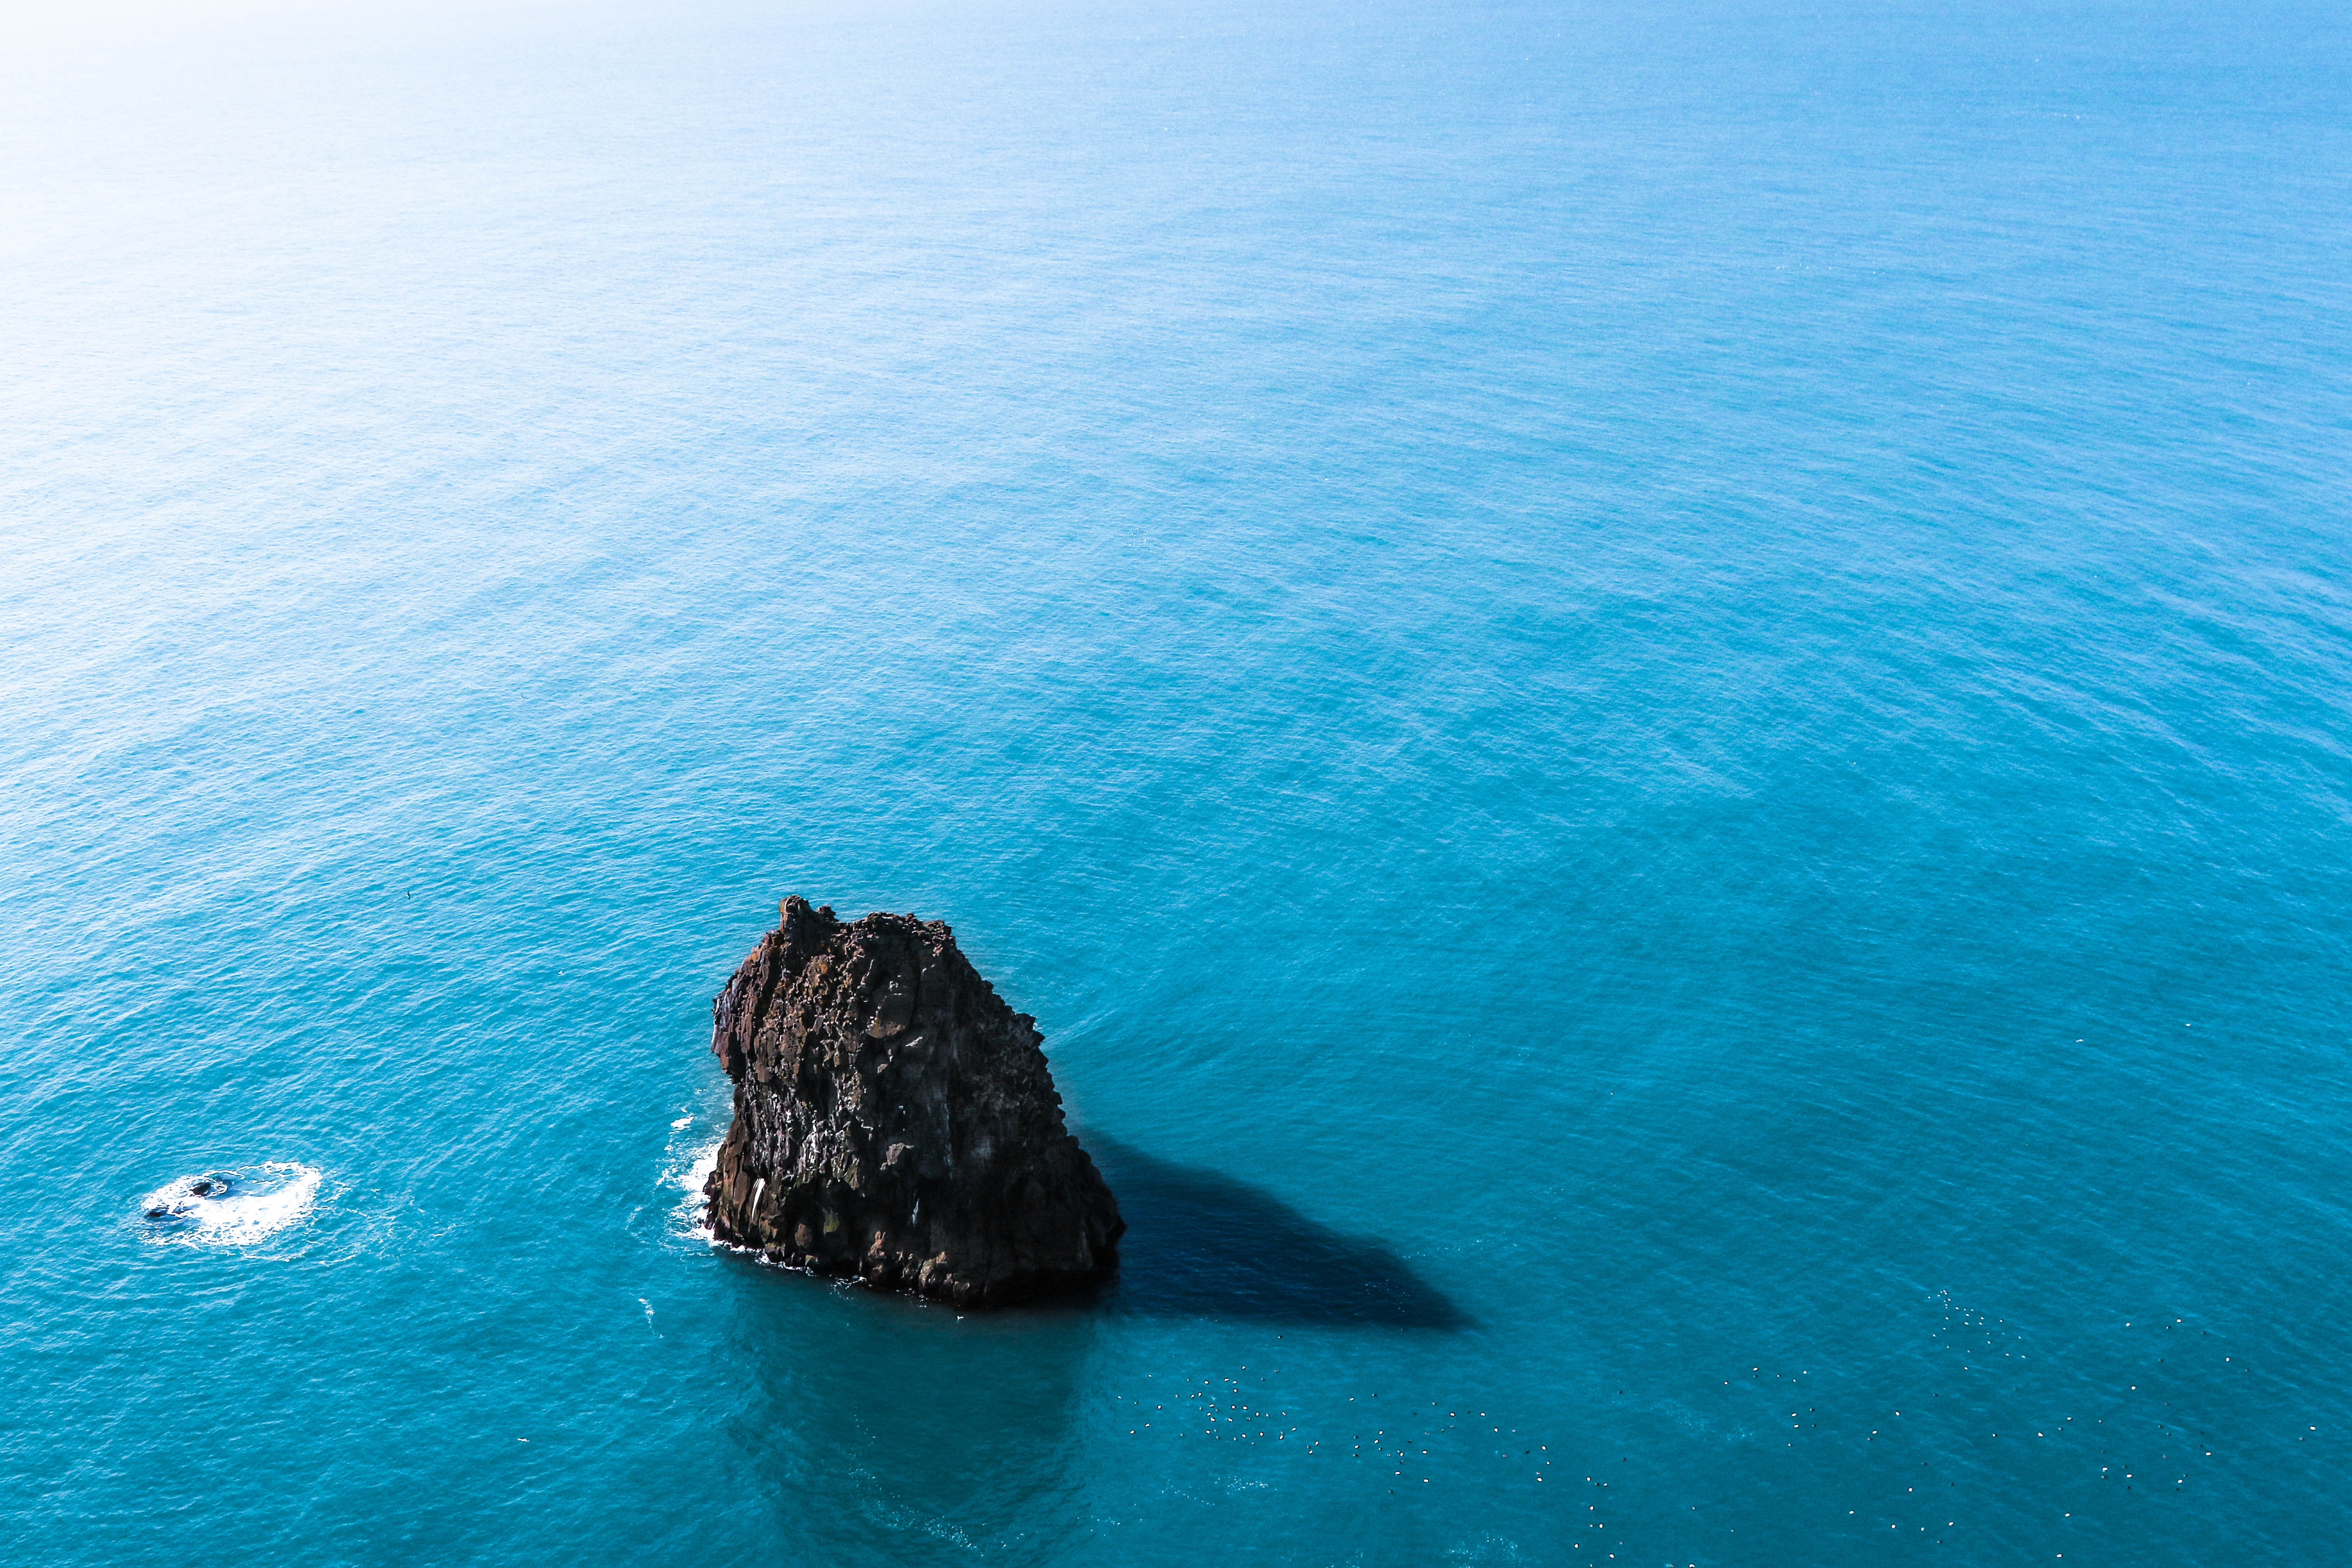 A large black rock in the middle of the bright blue sea